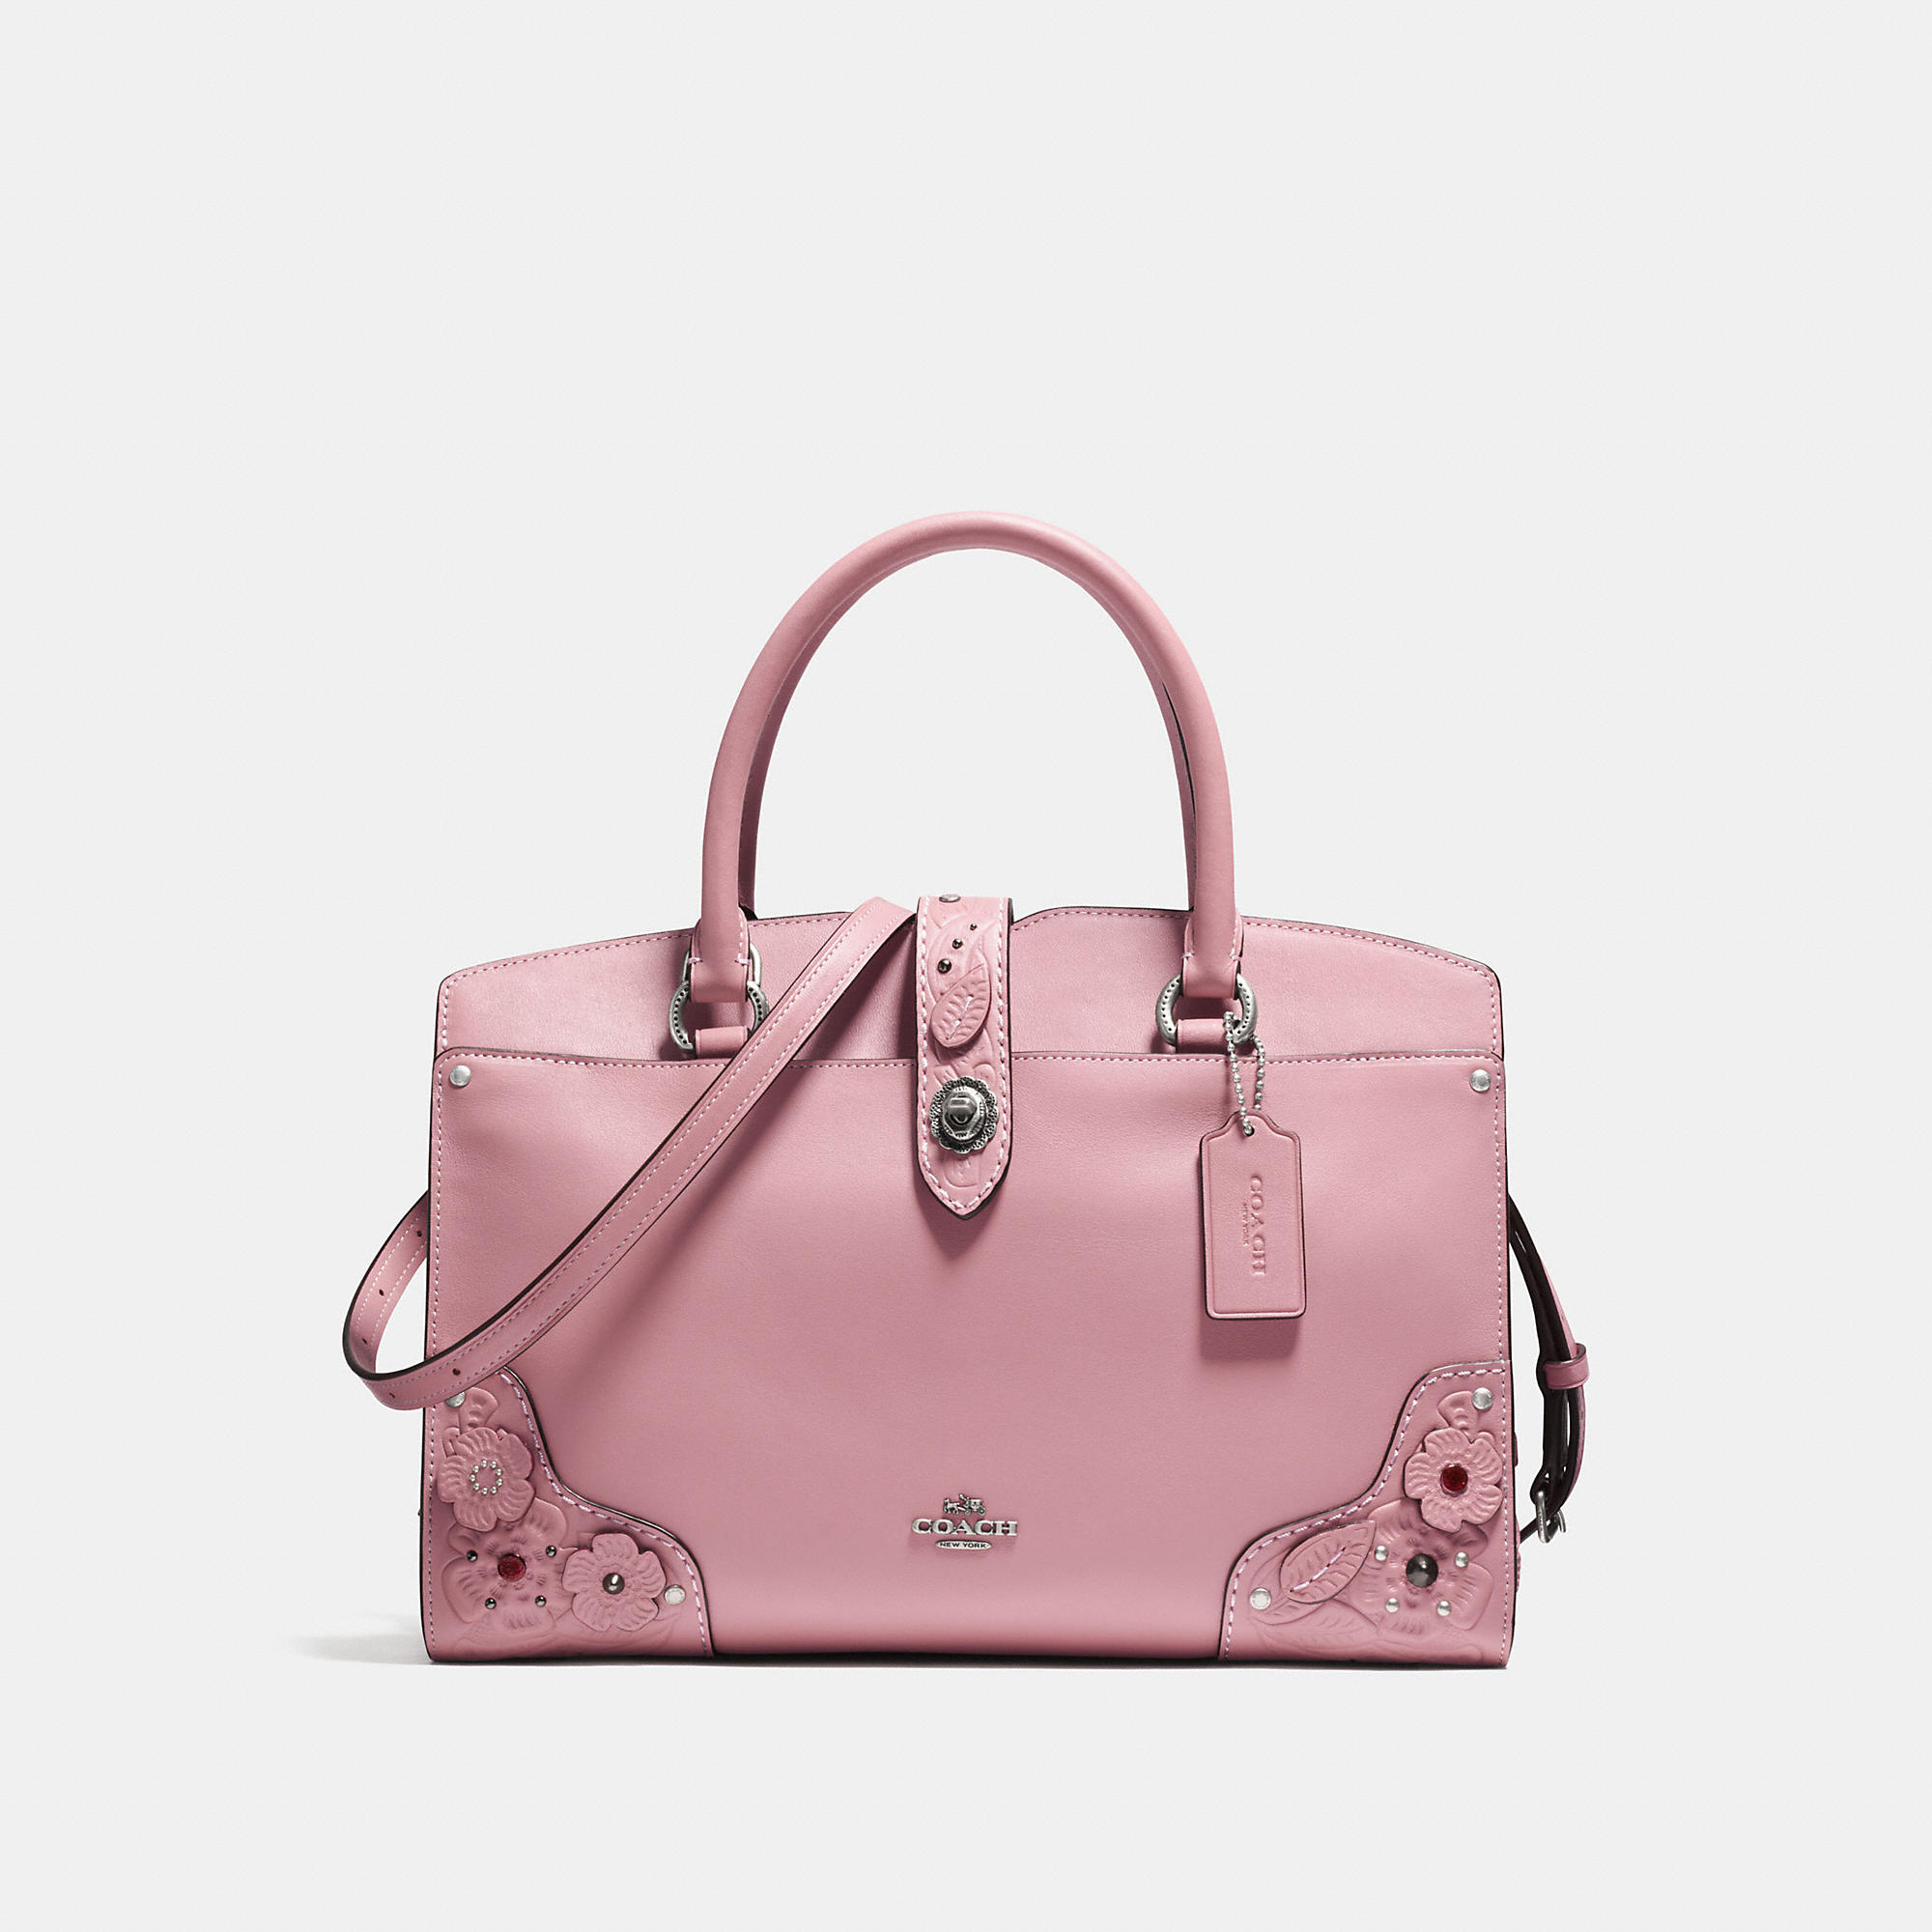 Coach Mercer Satchel 30 In Glovetanned Leather With Tea Rose And Tooling